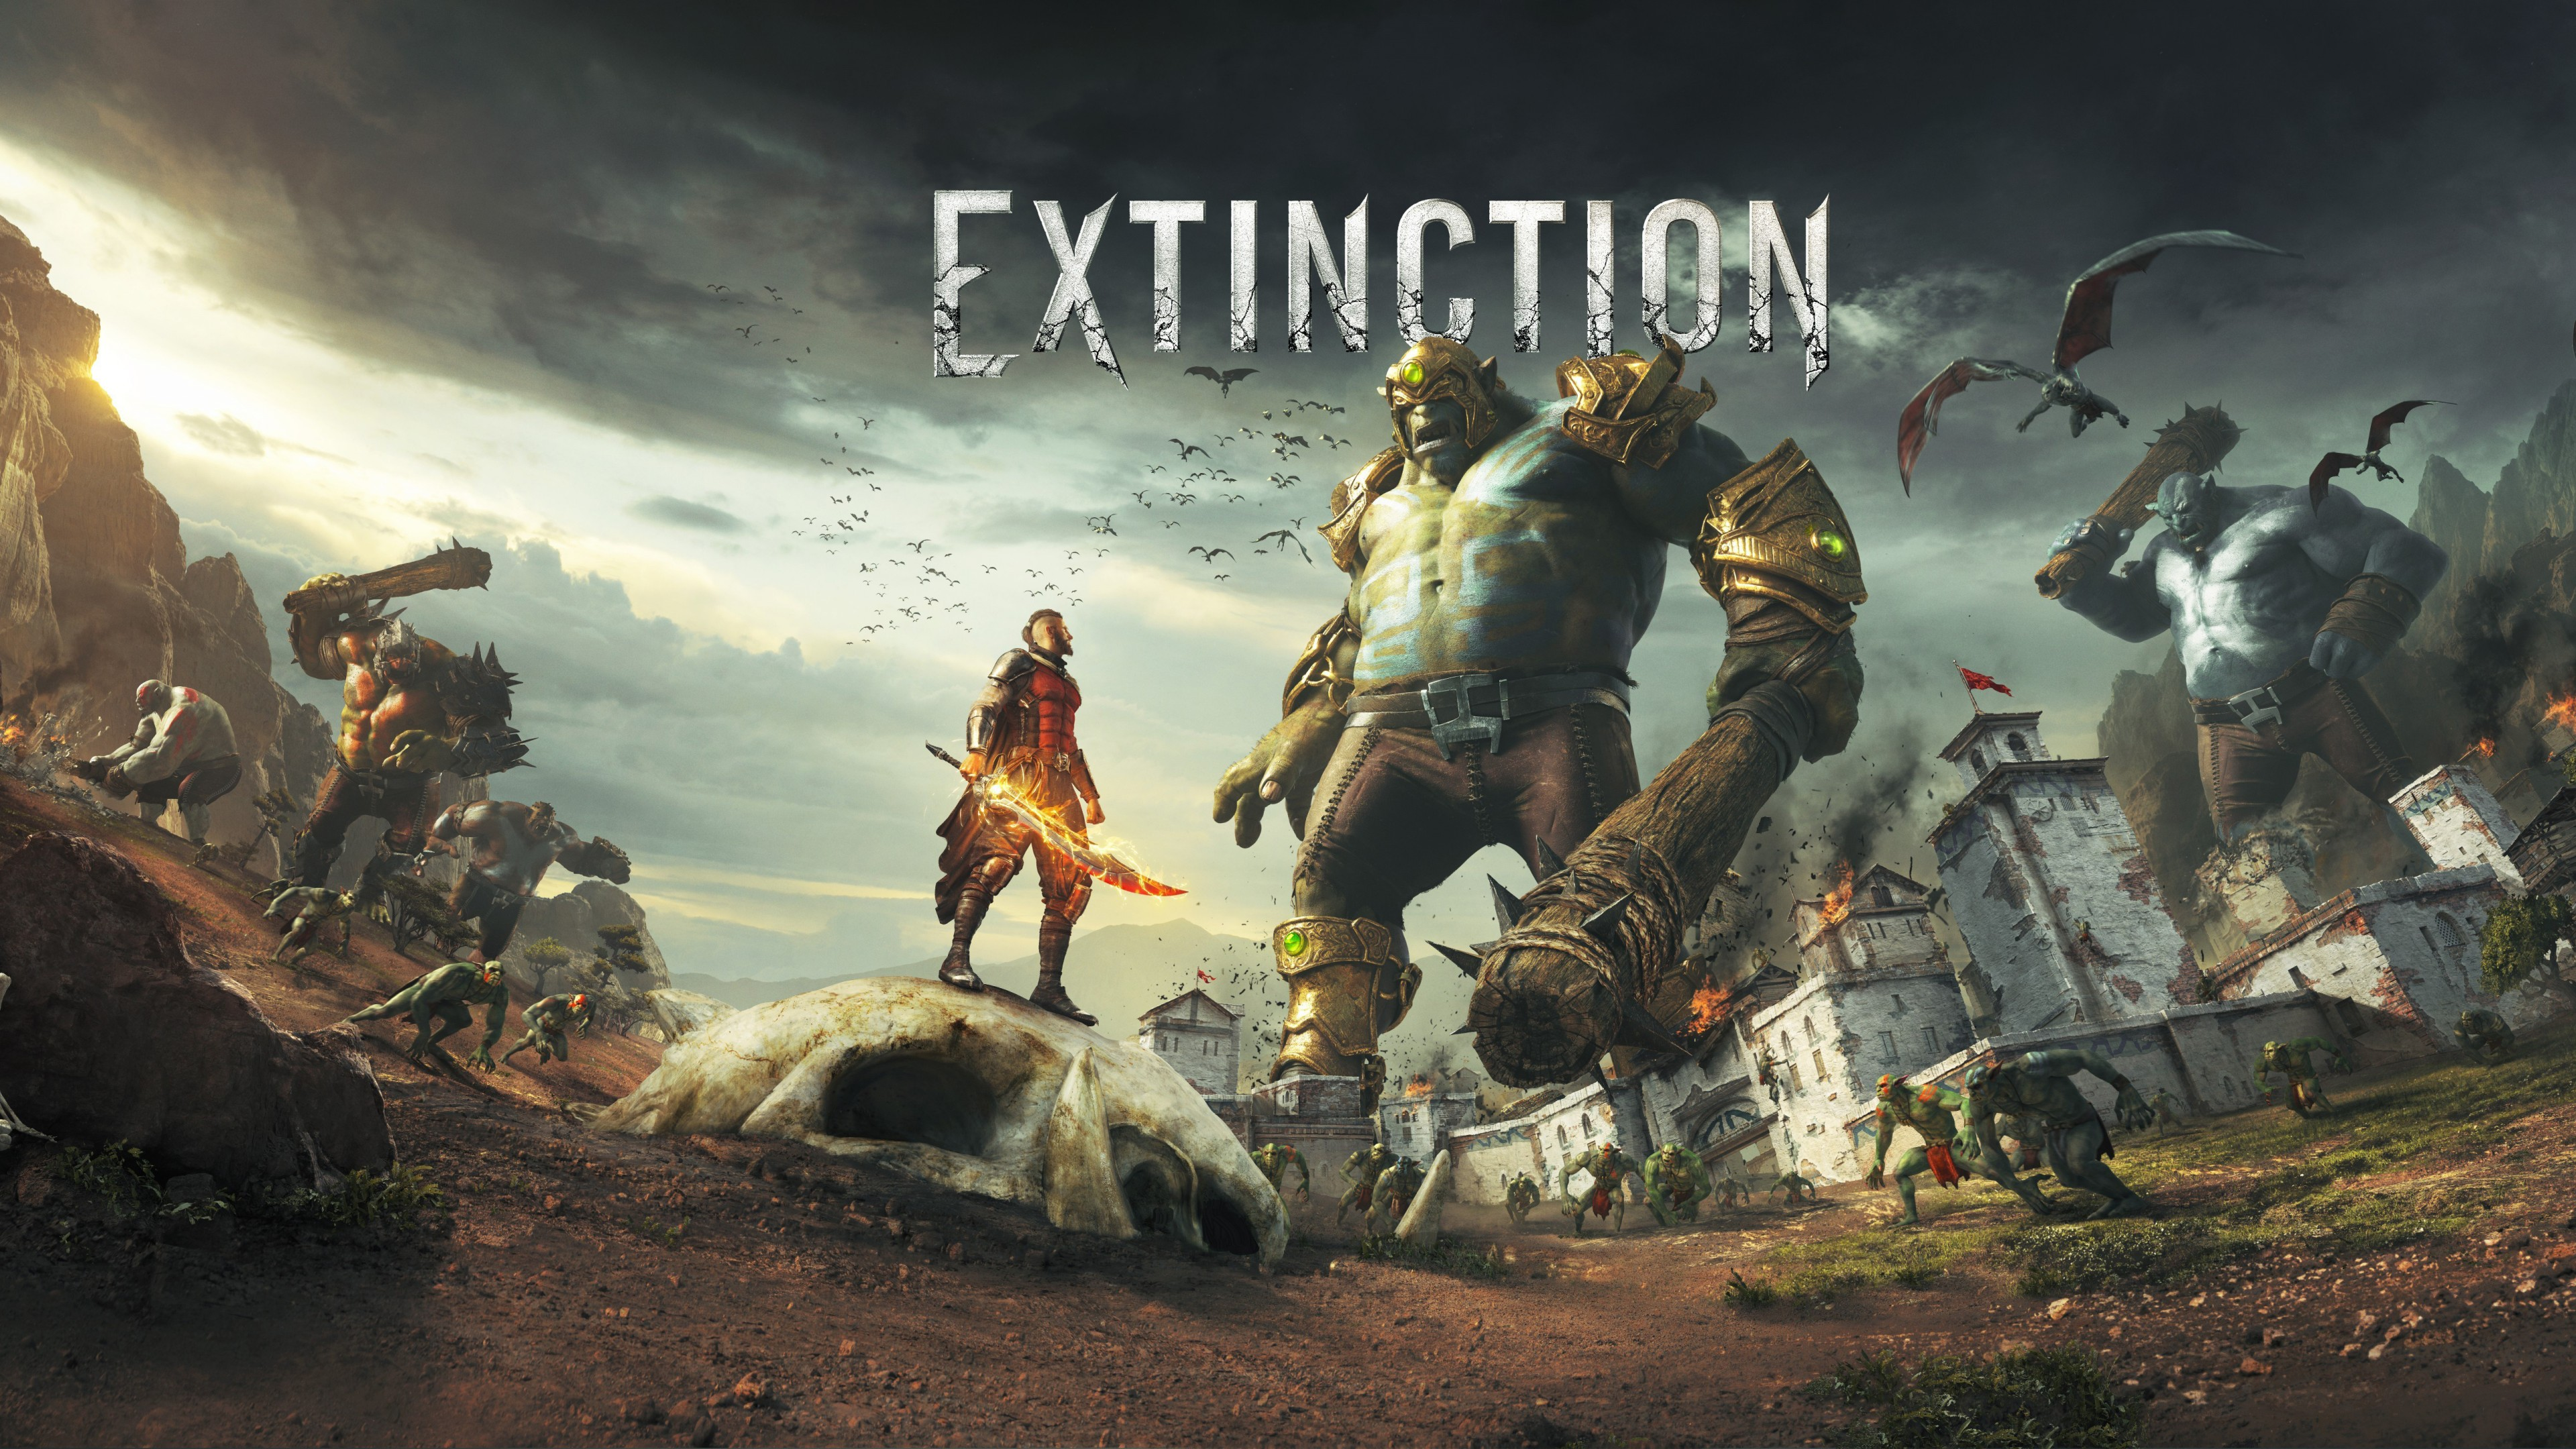 Cute Monster Wallpaper For Android Extinction 2018 Game 5k Wallpapers Hd Wallpapers Id 20459